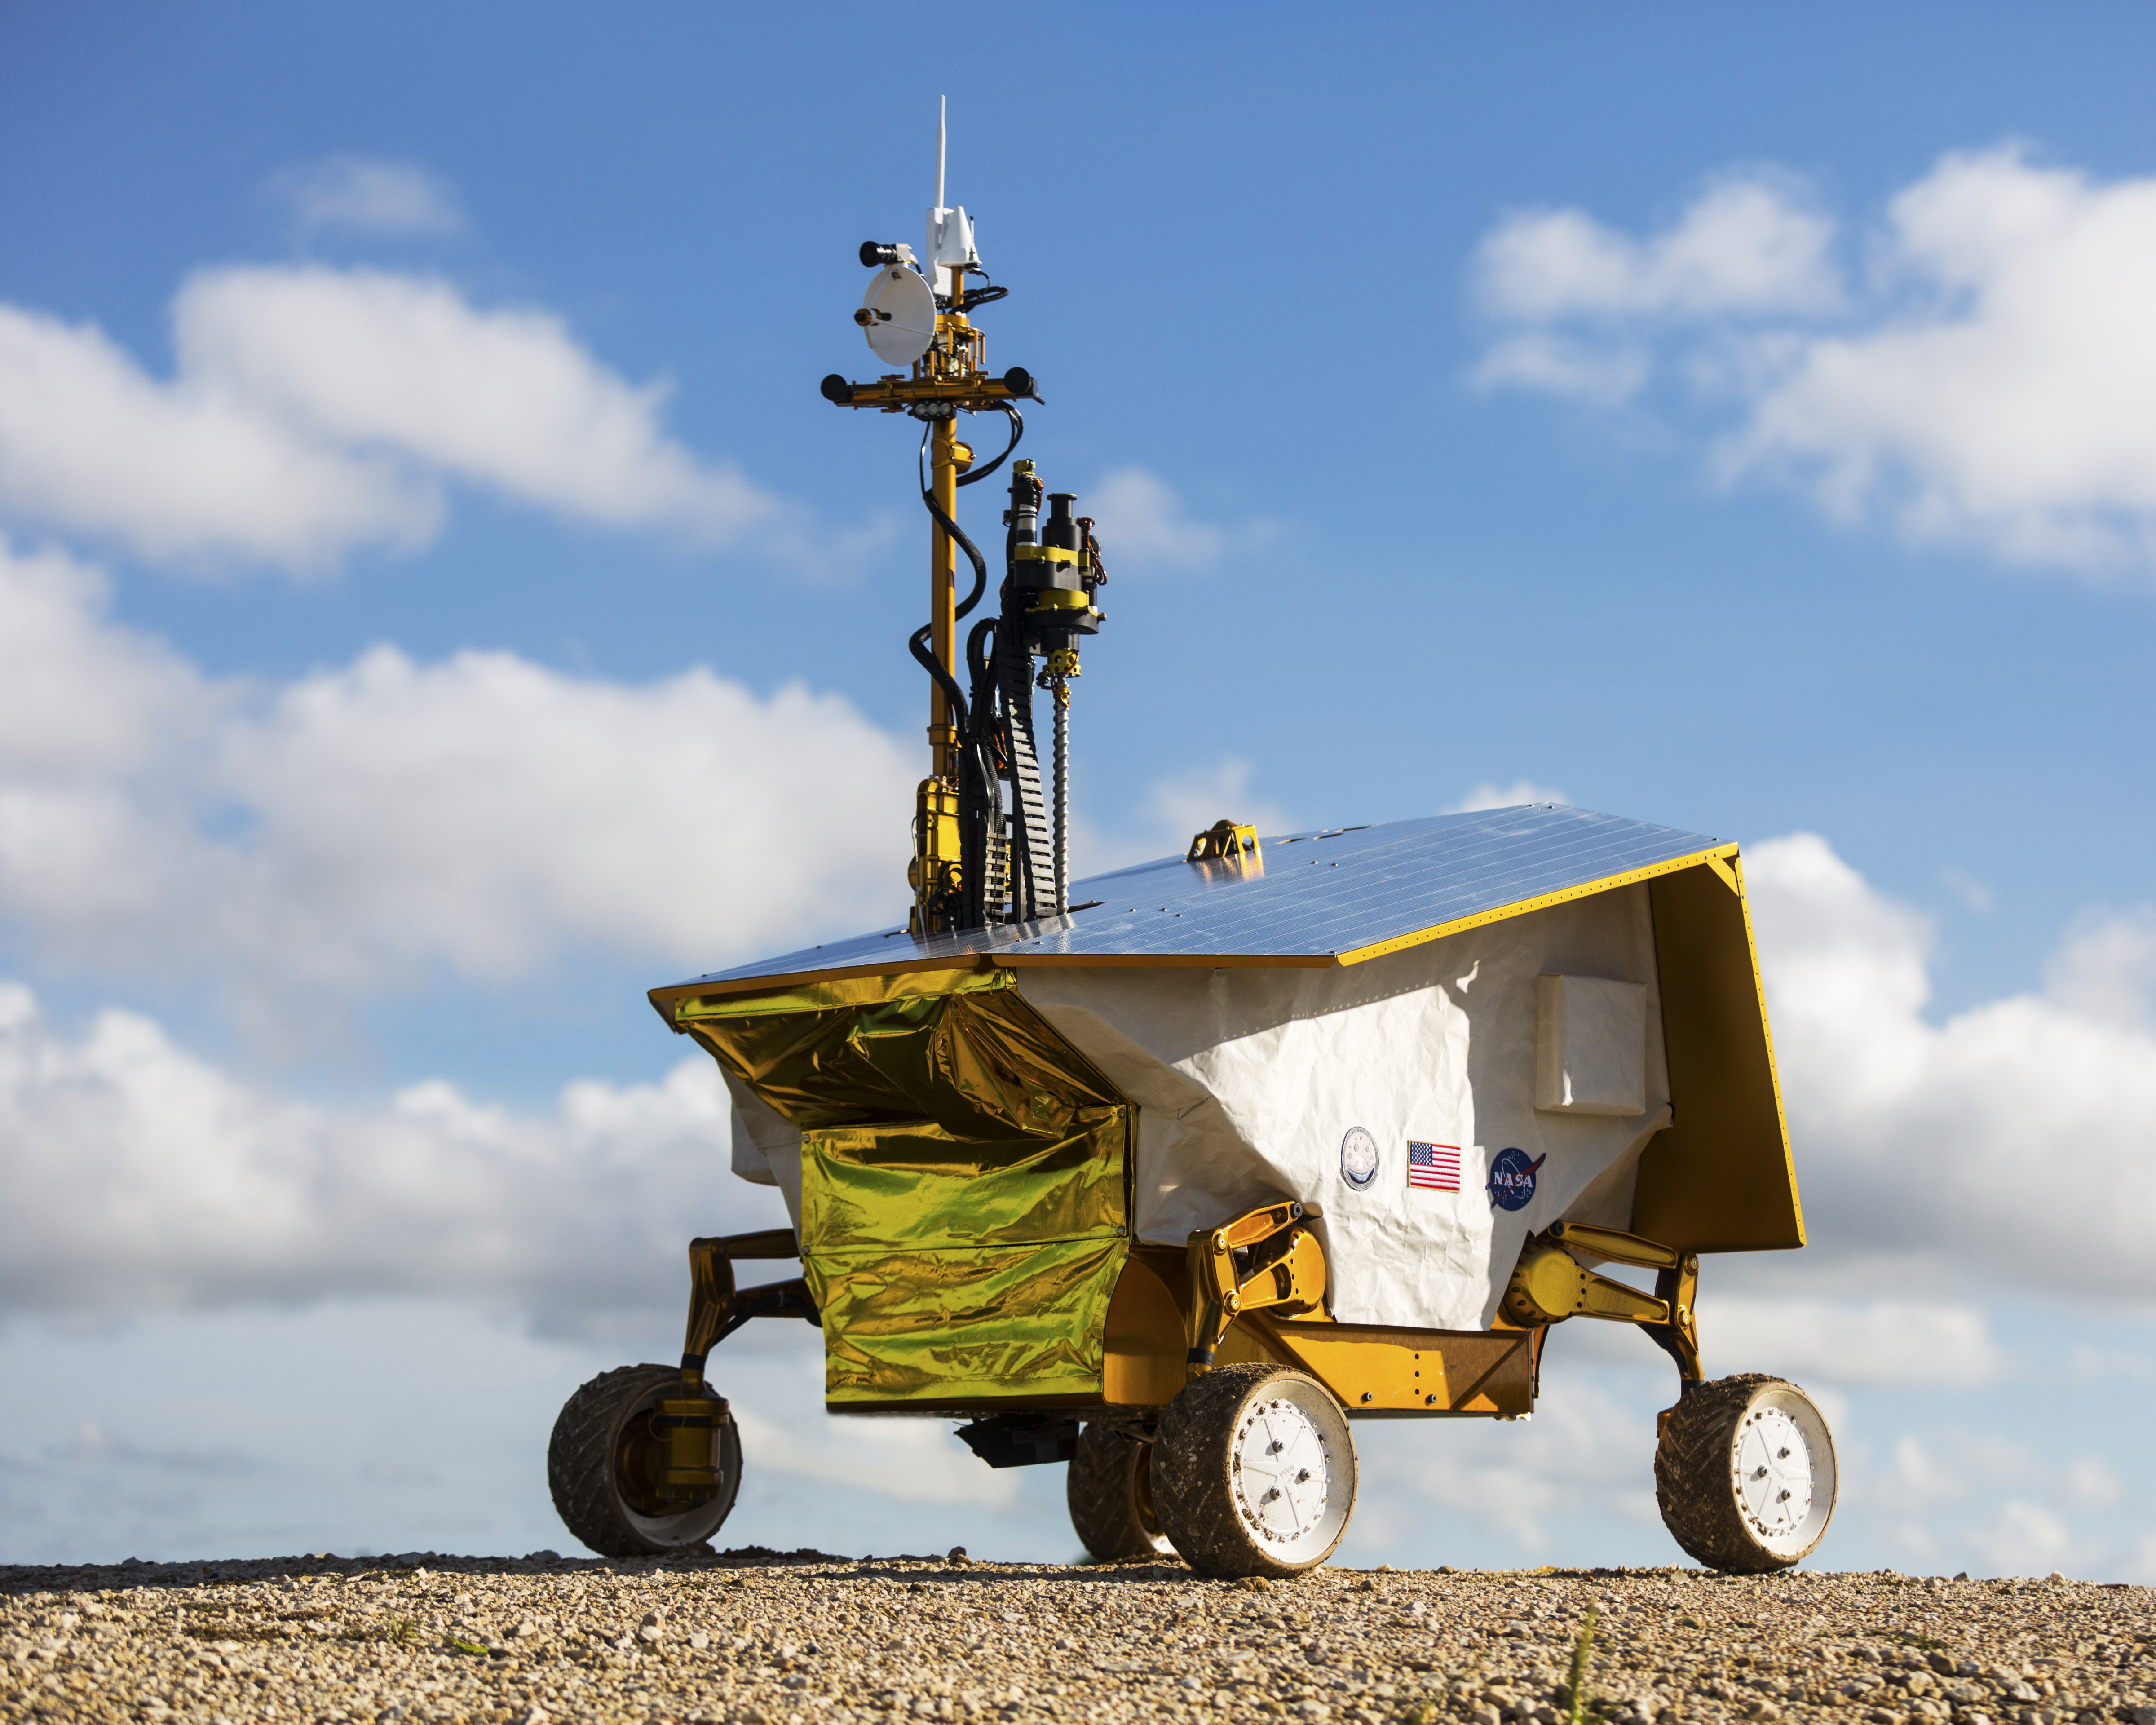 Built in only one year, this prototype rover/payload system enables terrestrial testing to inform system designs